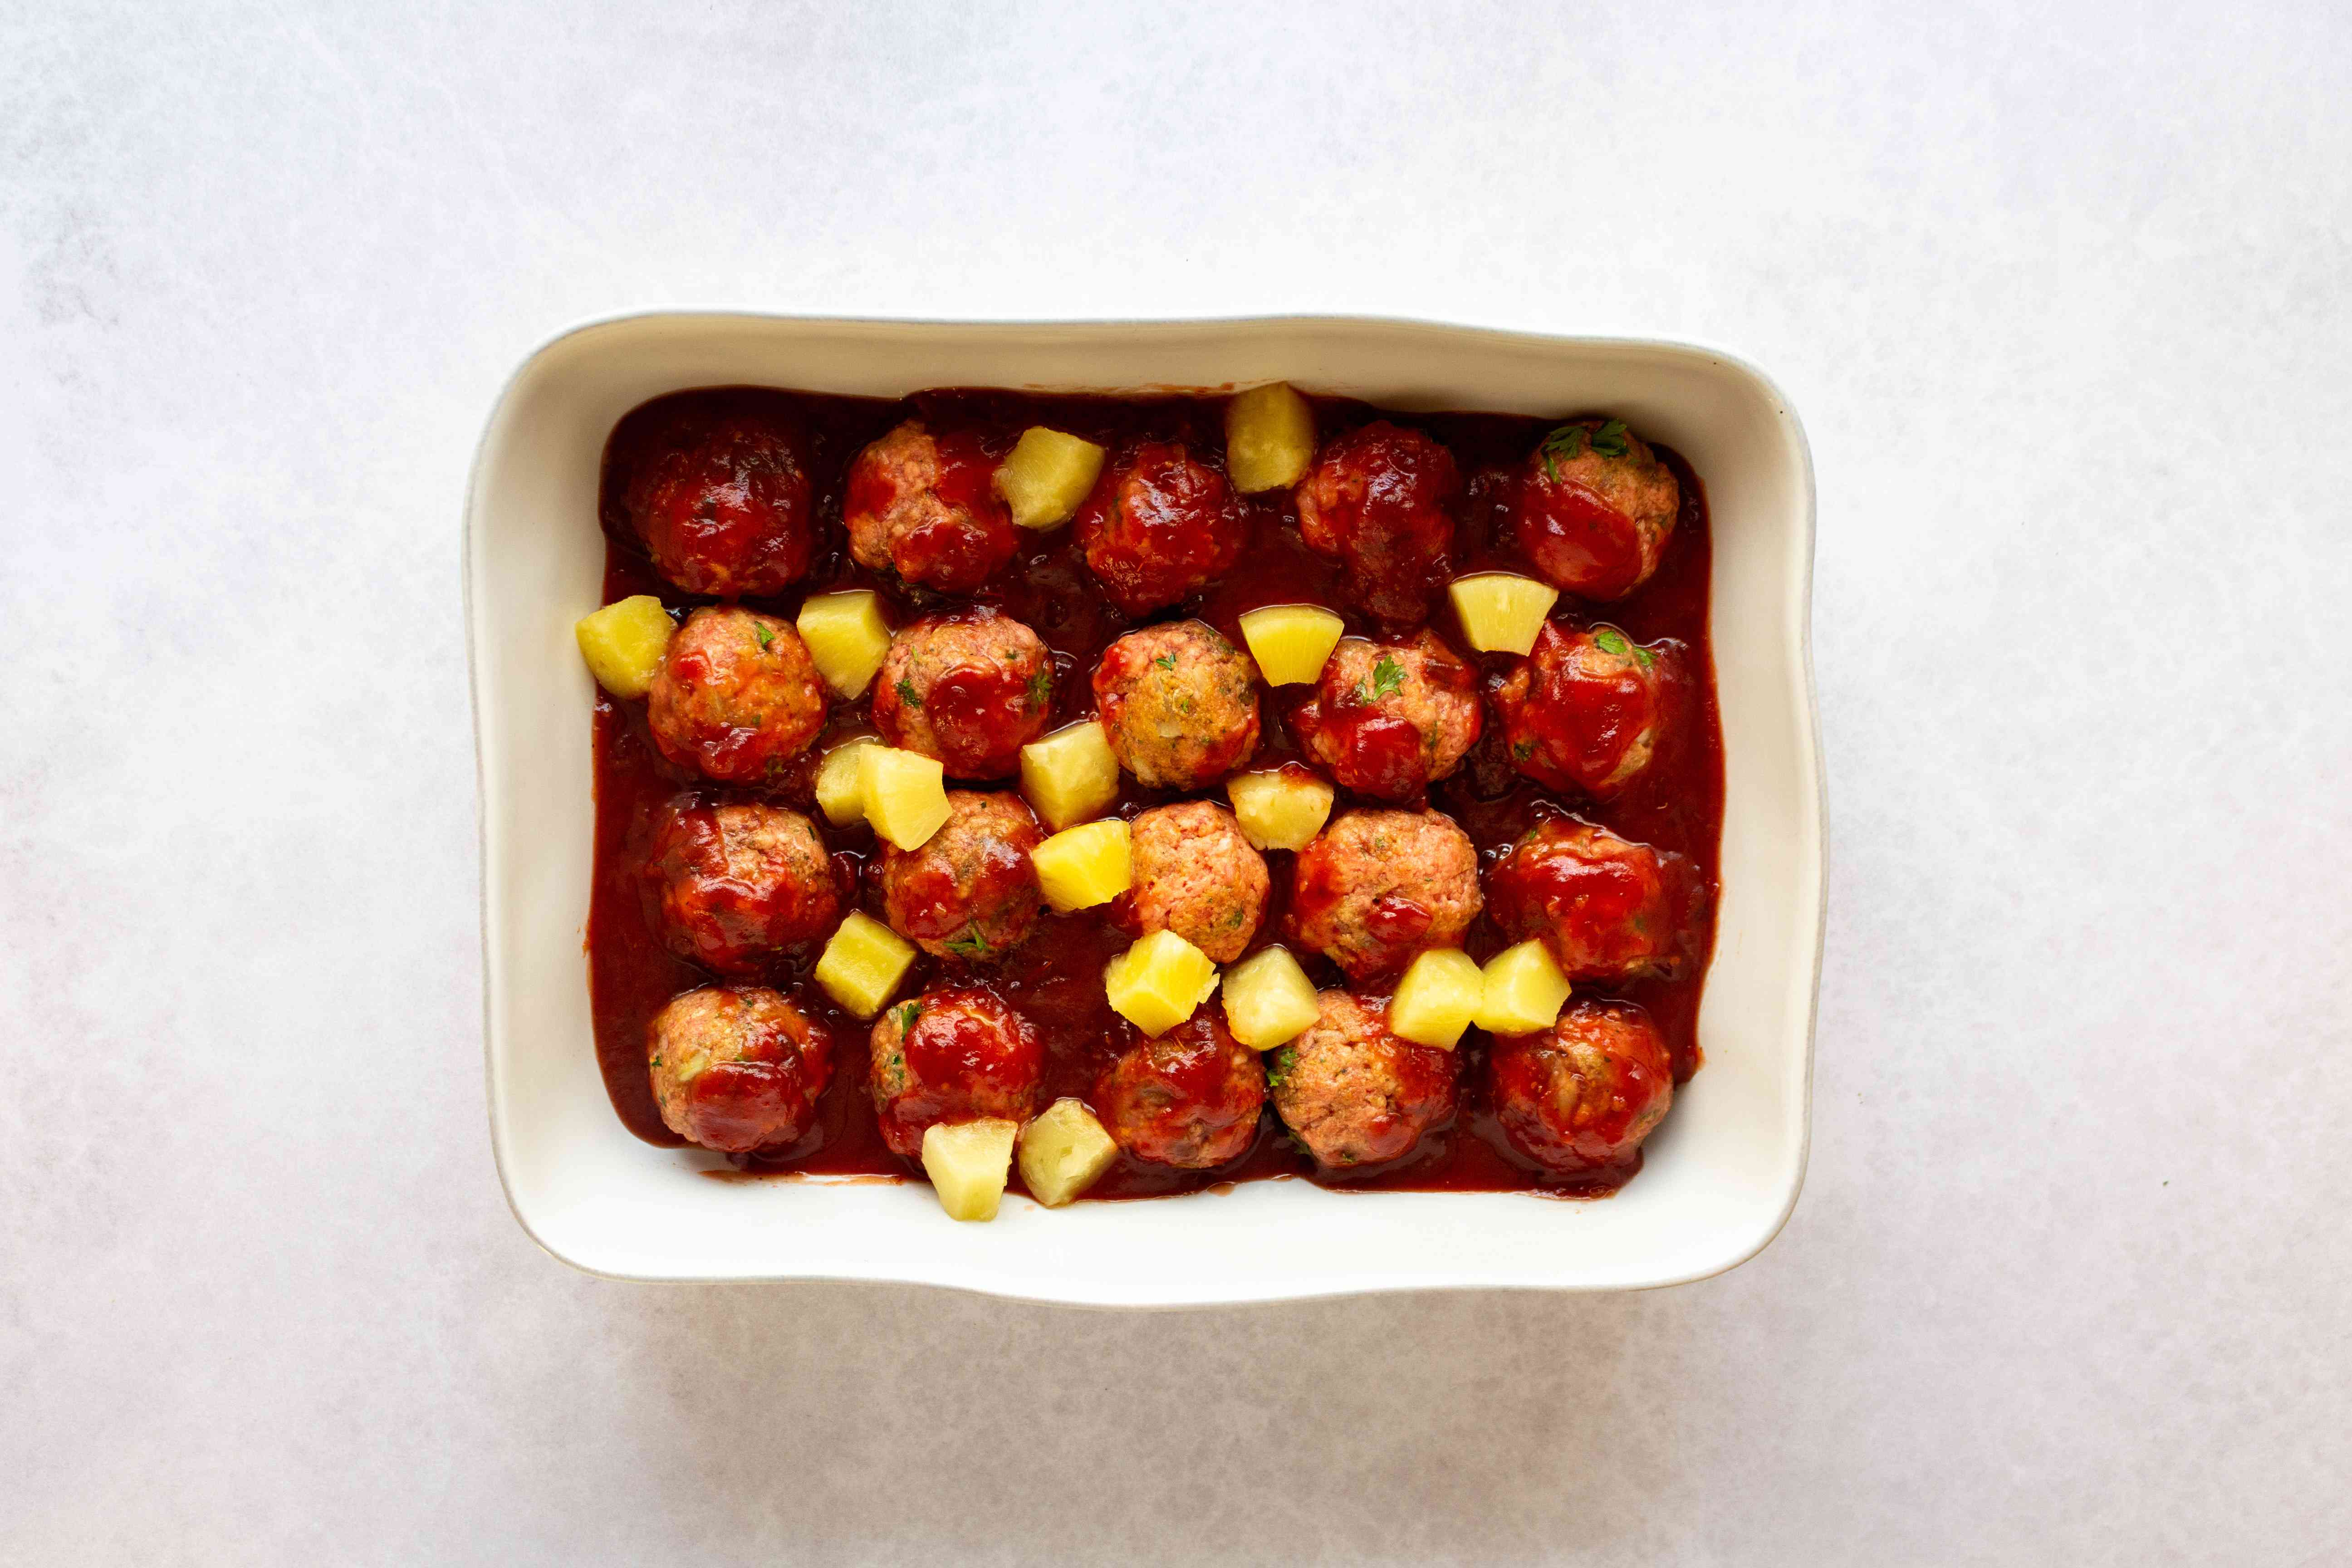 meatballs with sauce and pineapple chunks on top